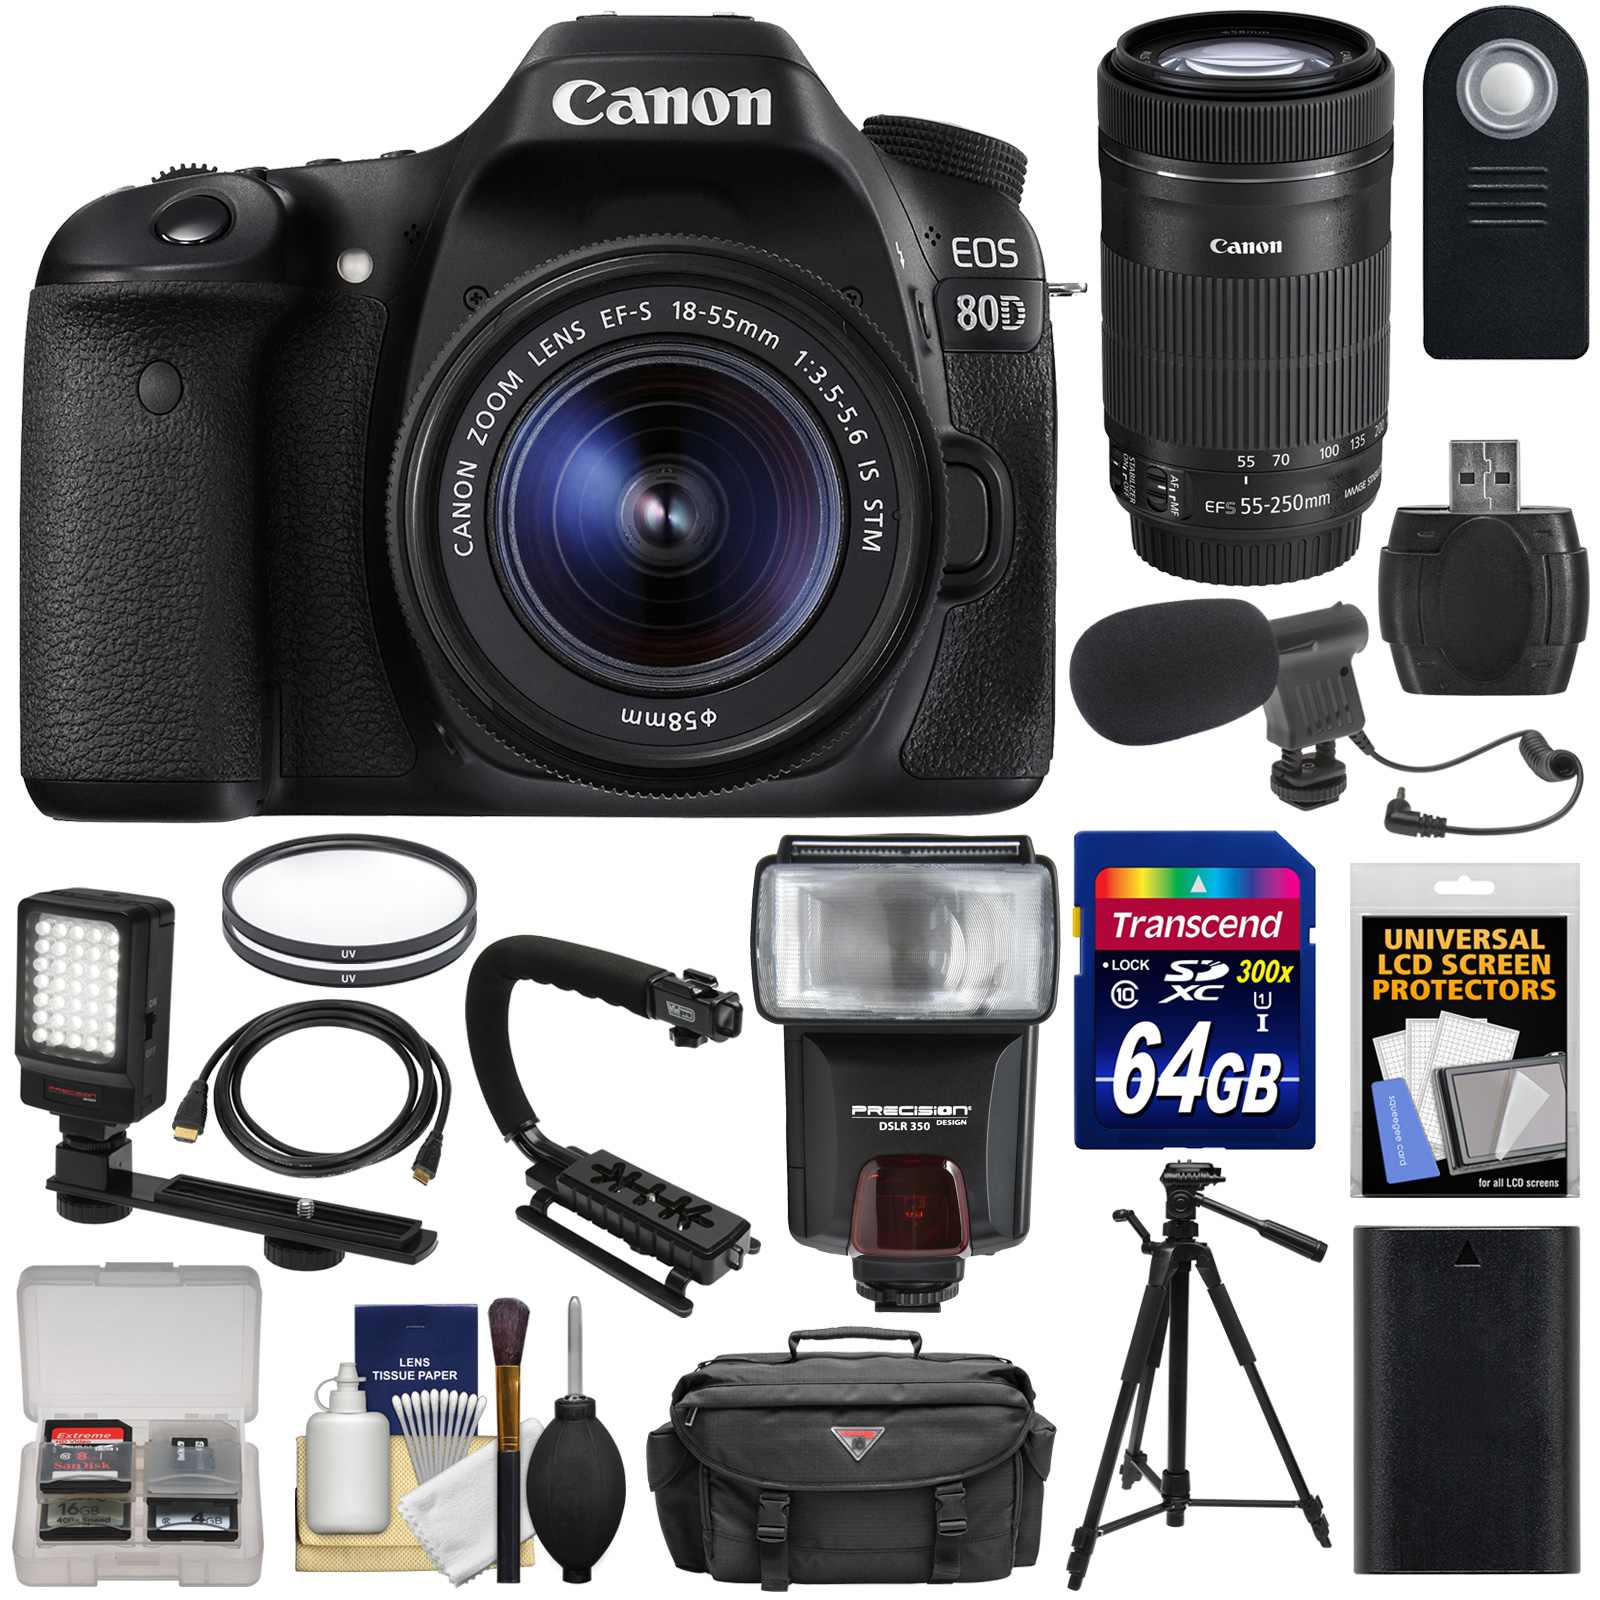 Canon EOS 80D Wi-Fi Digital SLR Camera & 18-55mm IS STM + 55-250mm IS STM Lens + 64GB + Battery + Case +... by Canon